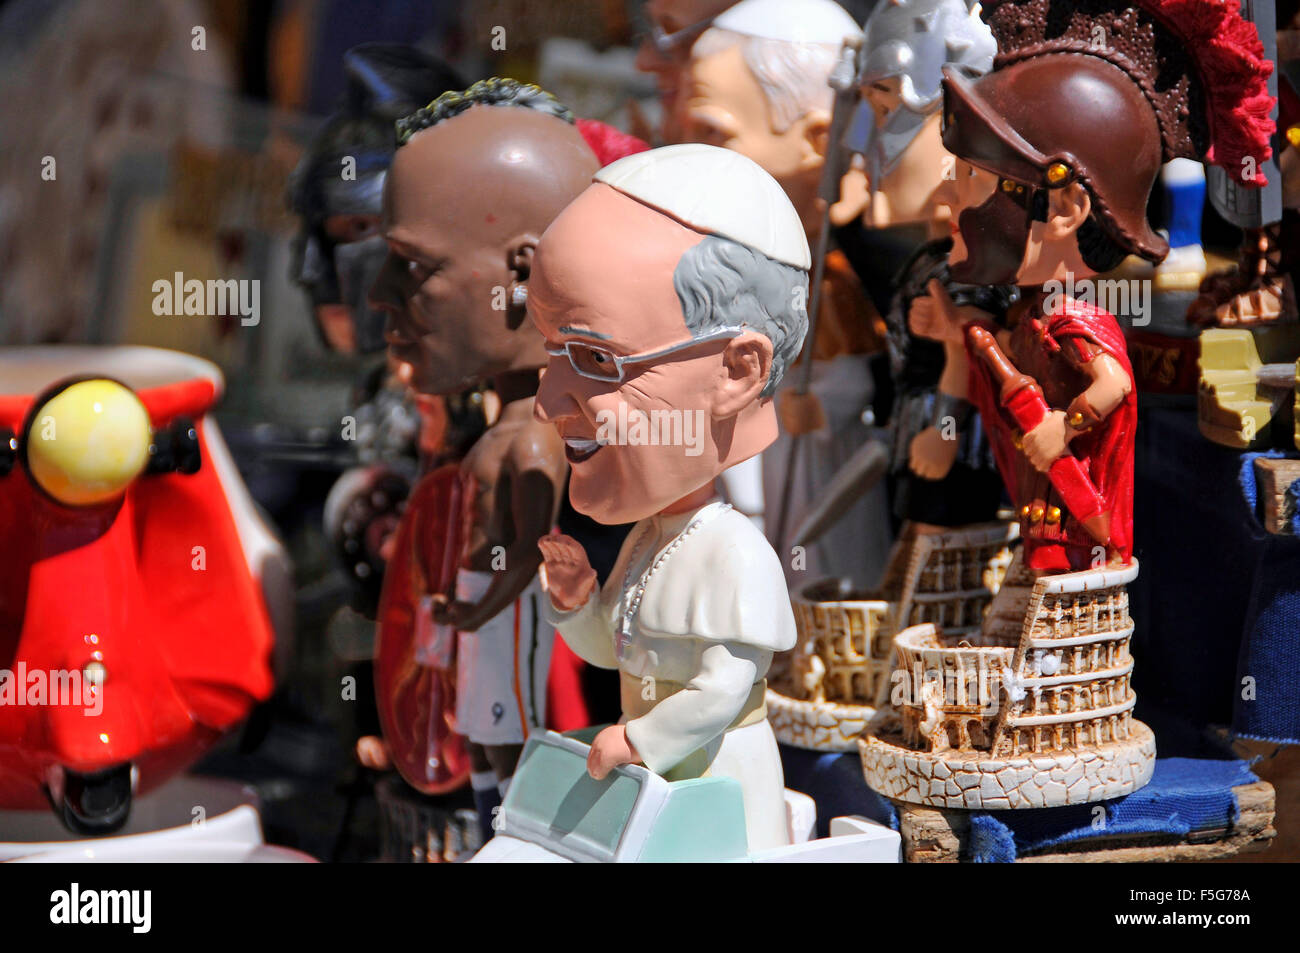 Souvenir stall in Vatican City with figurines of Pope Francis, Gladiators and footballer Balotelli in Rome, Italy - Stock Image